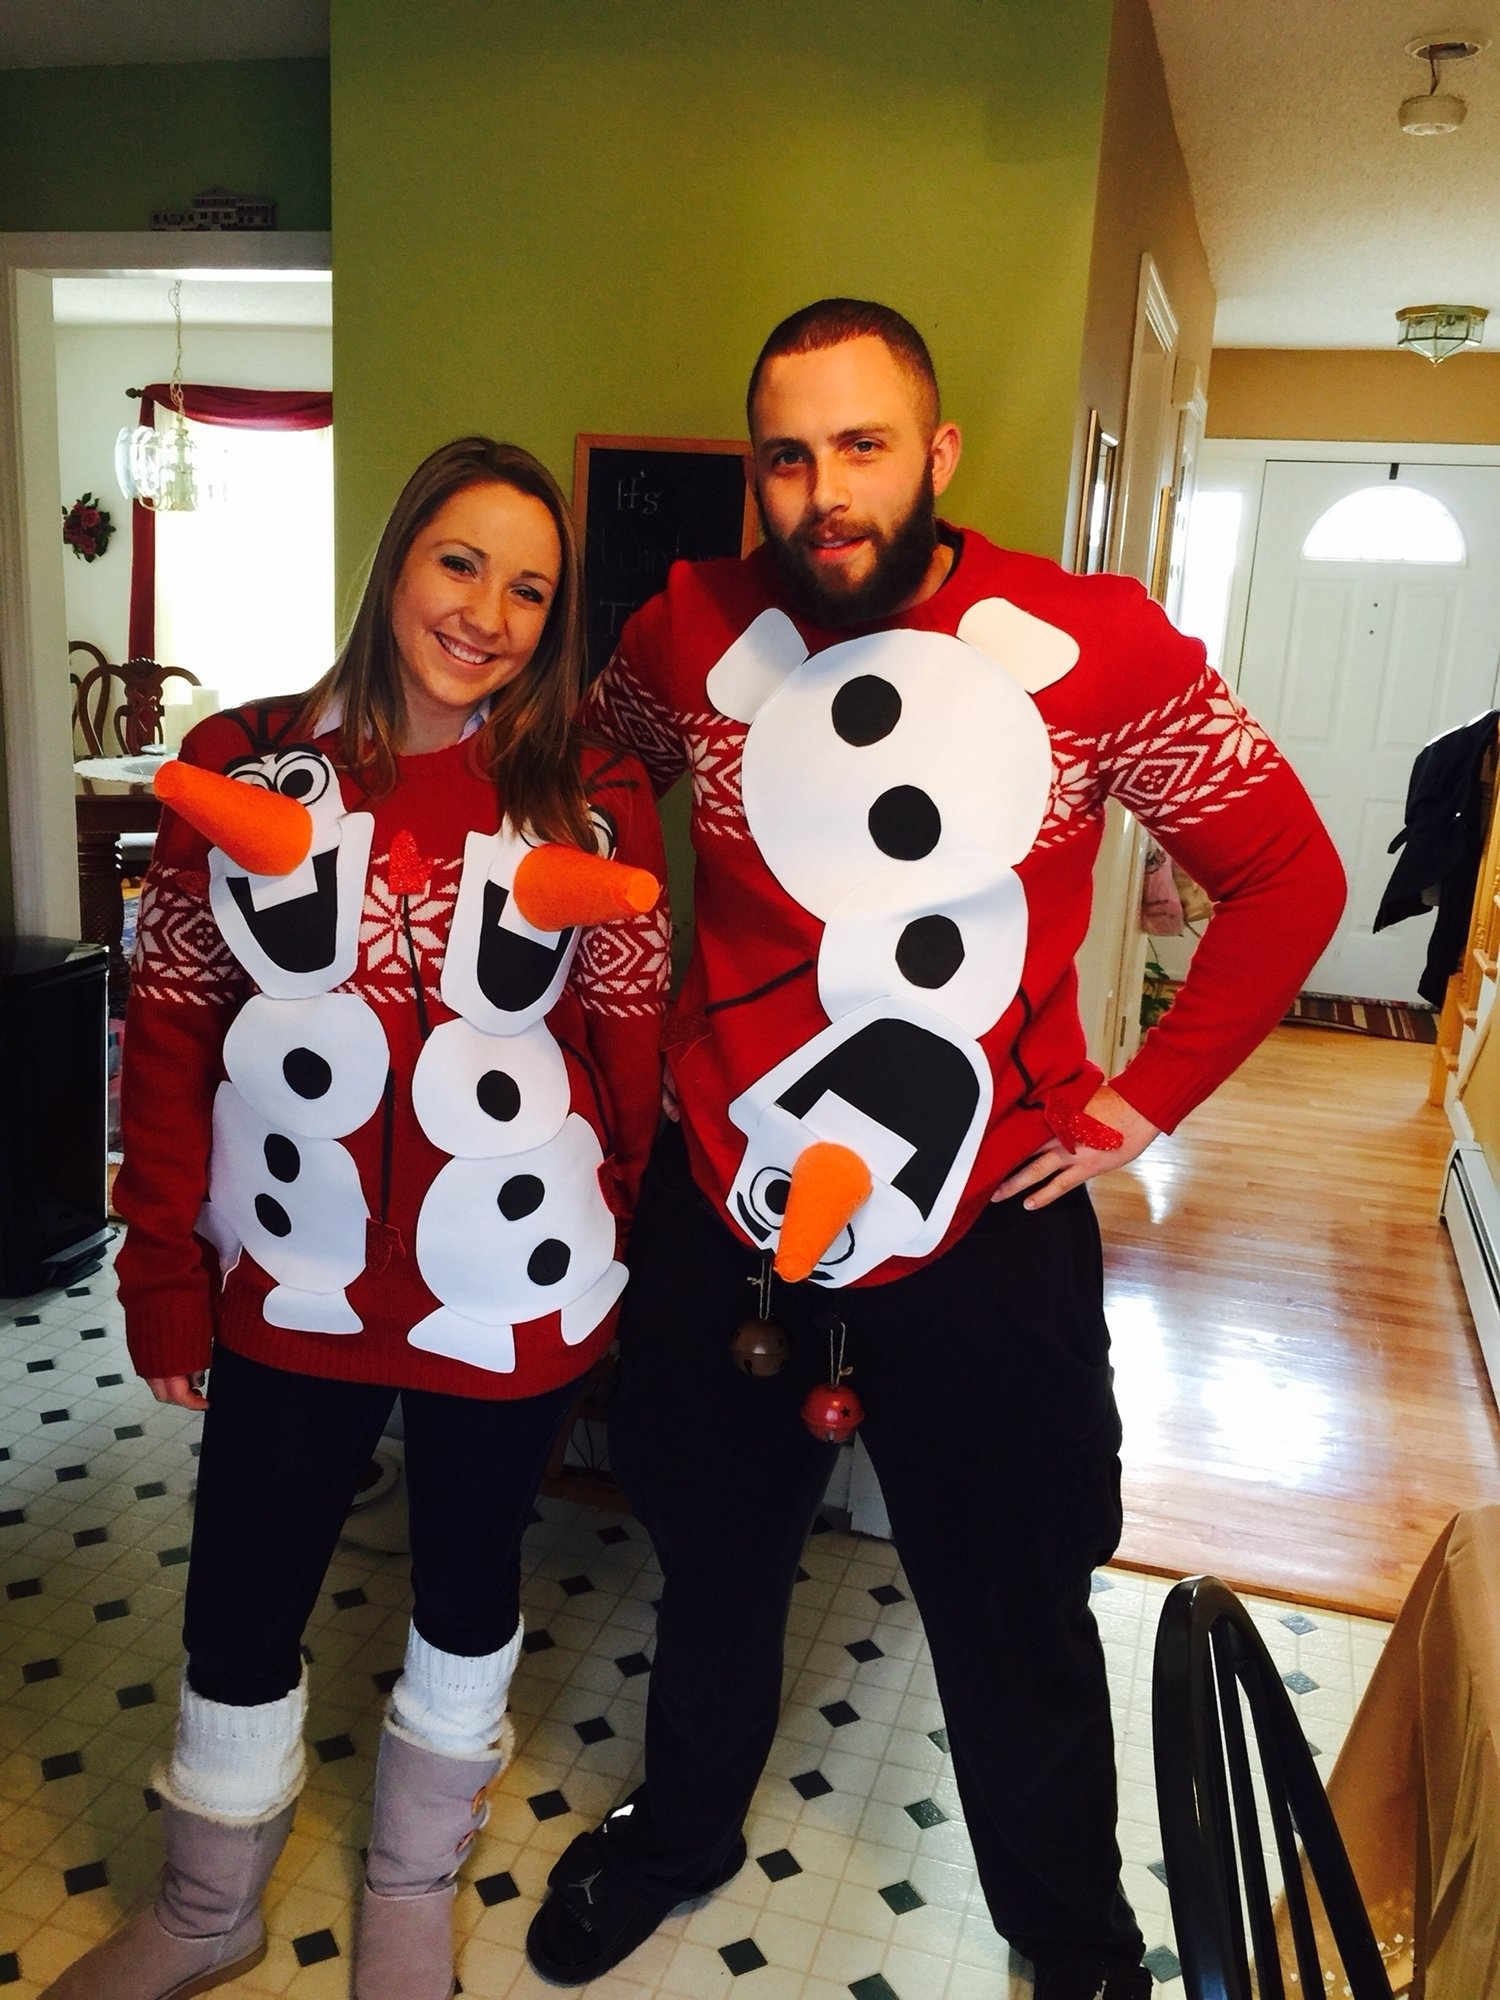 10 Awesome Ugly Christmas Sweater Ideas For Couples olaf ugly sweater olaf couples ugly sweater pinterest olaf 1 2020